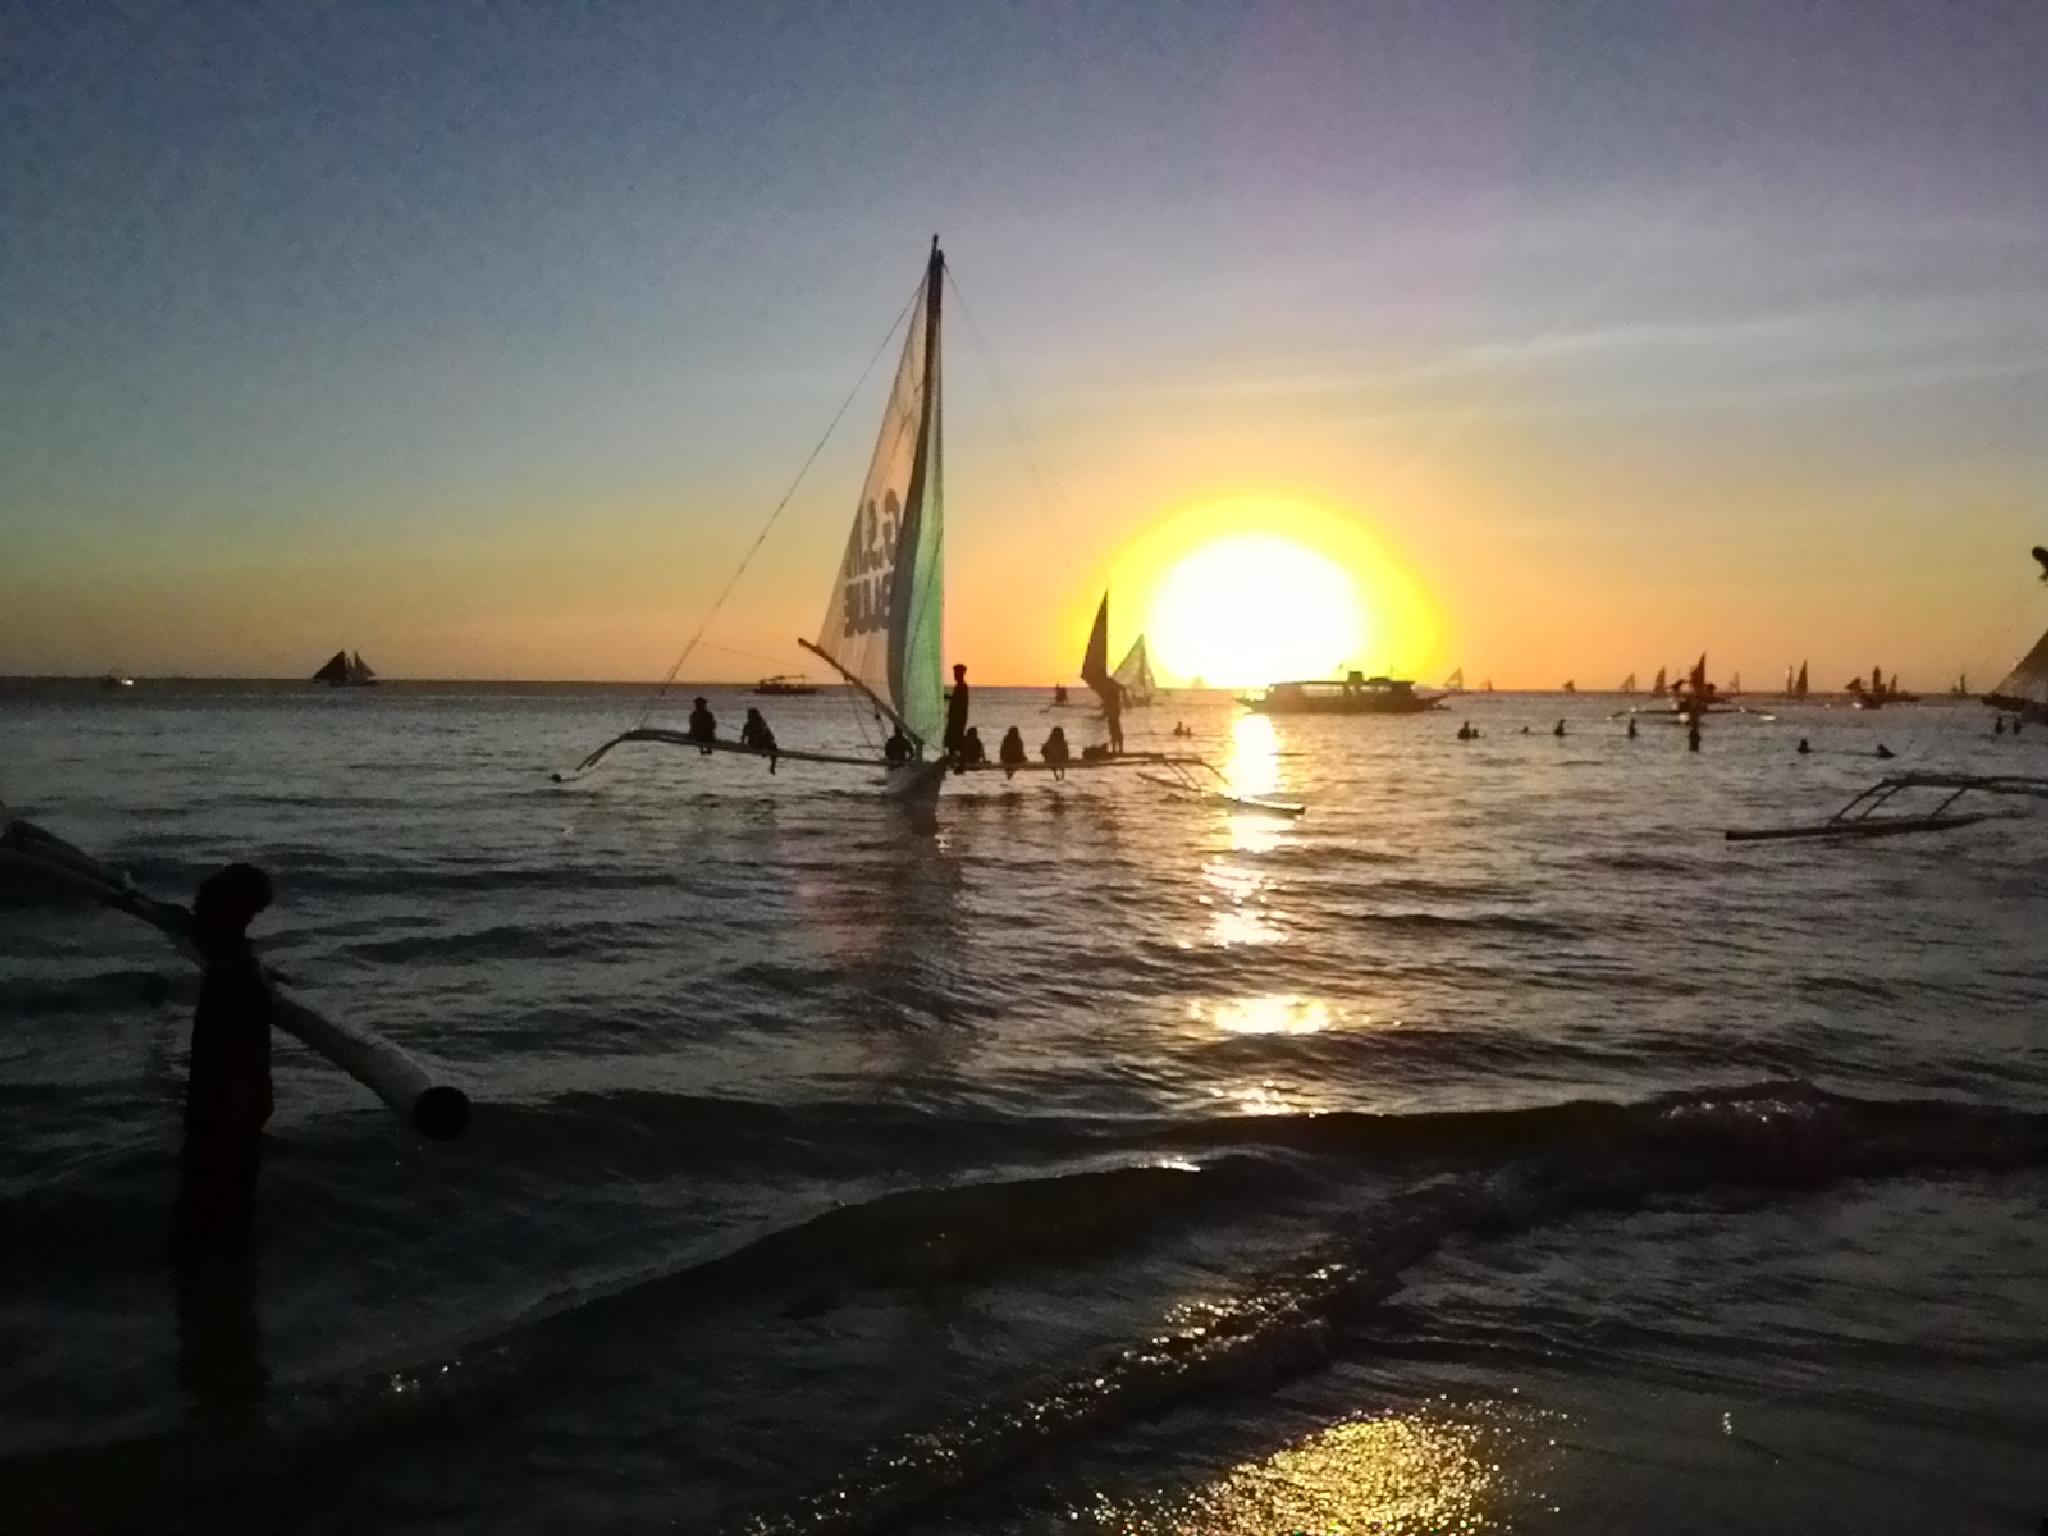 Sunset in Boracay by george